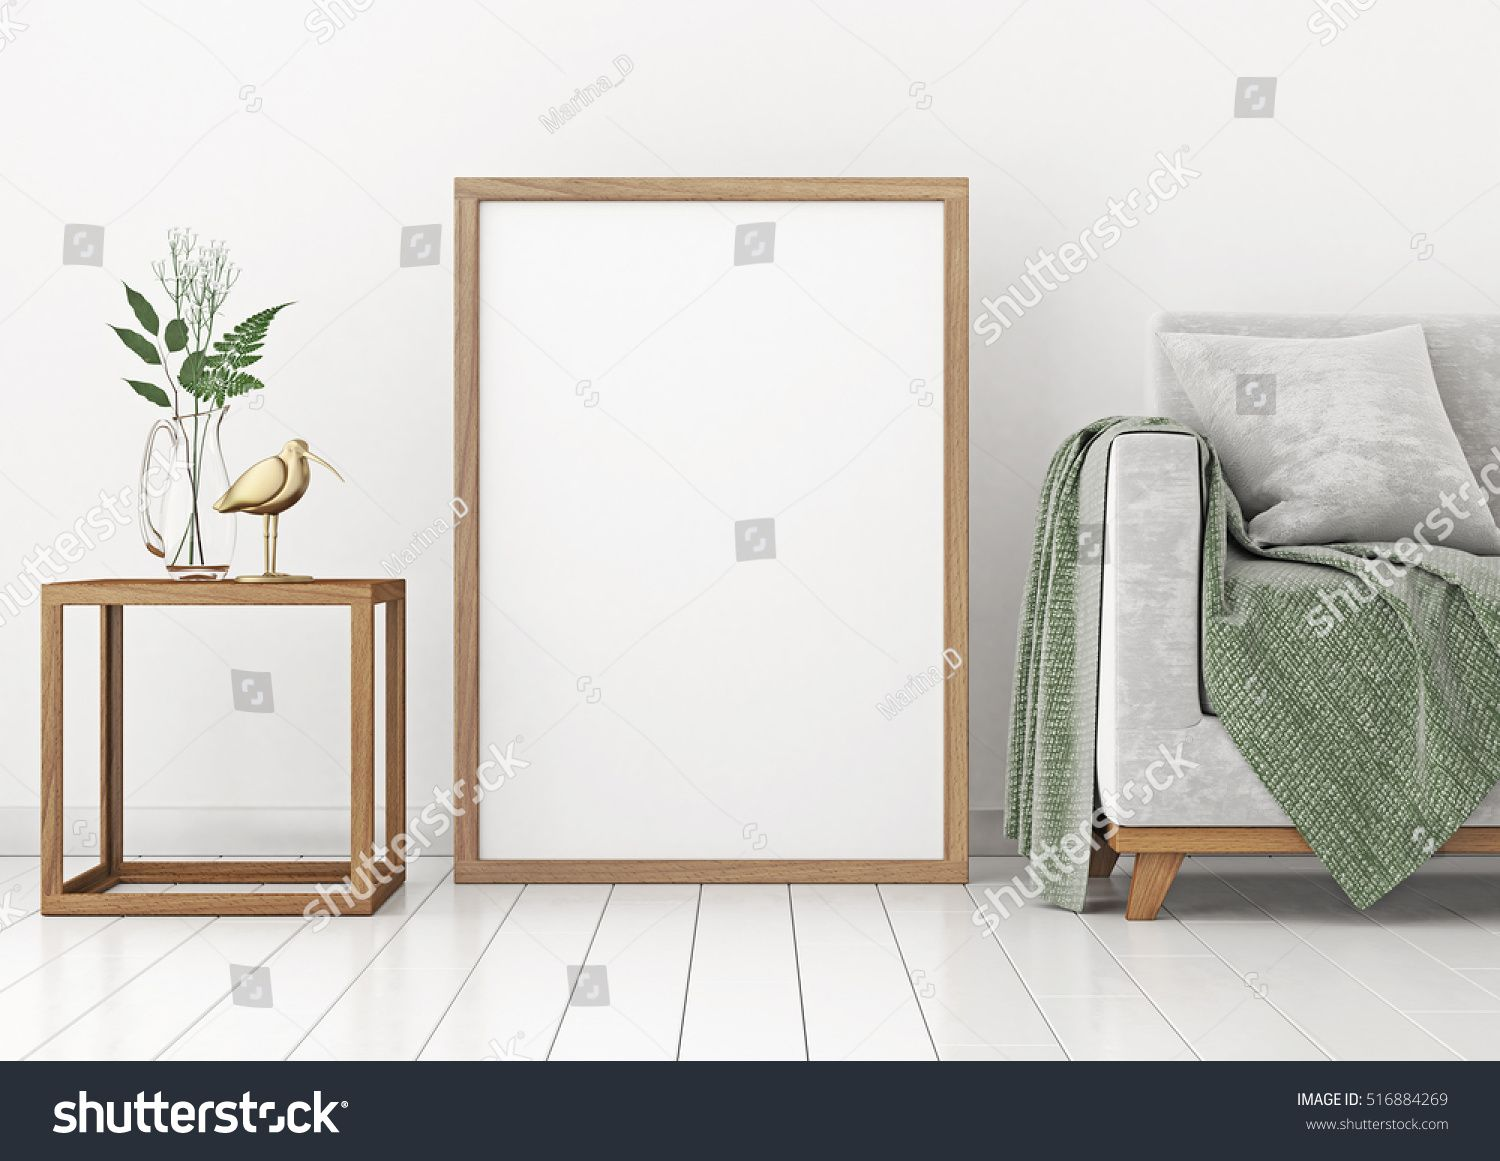 Interior poster mock-up with empty wooden frame and plants on white ...